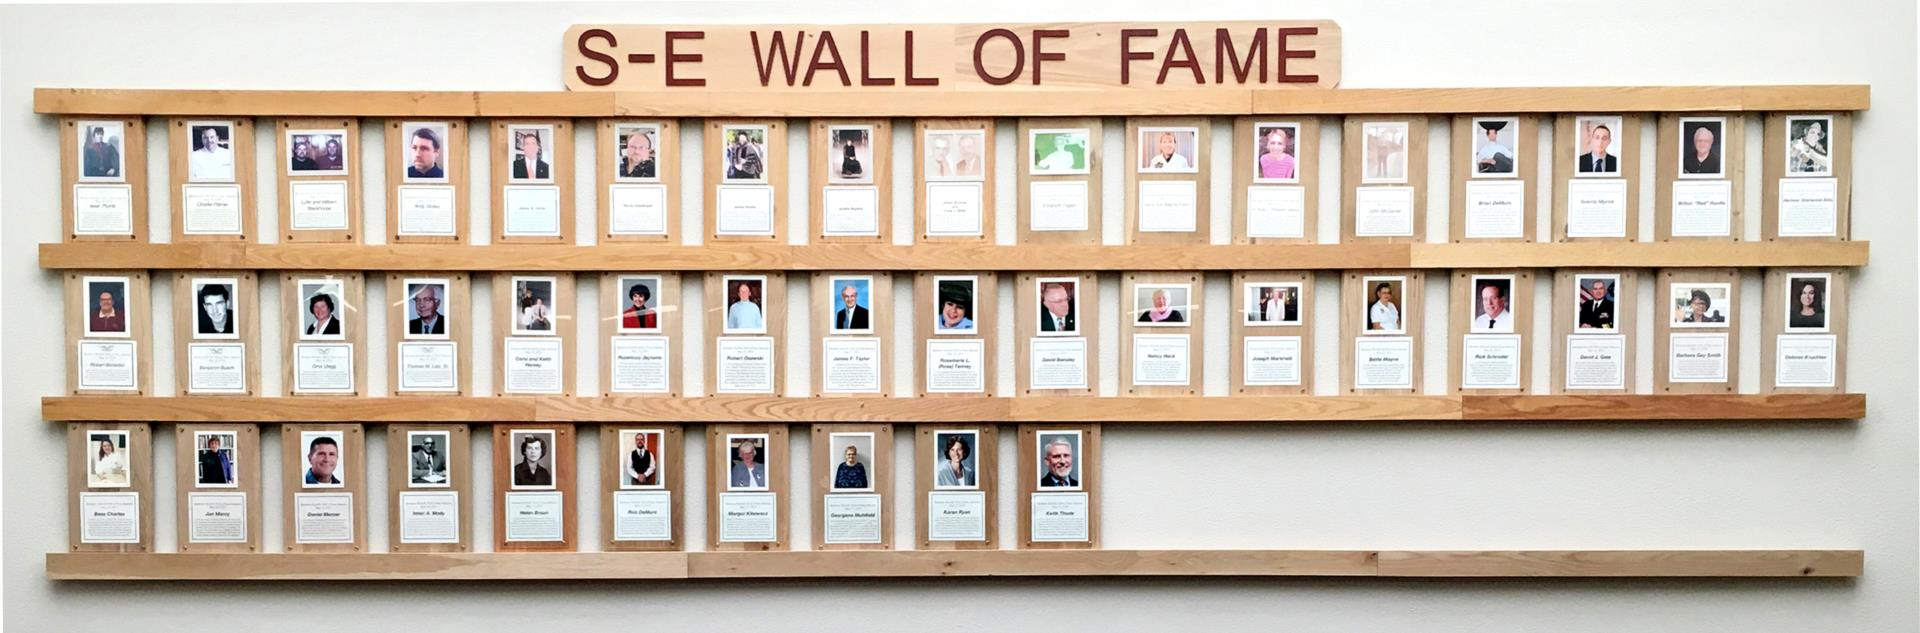 S-E Wall of Fame